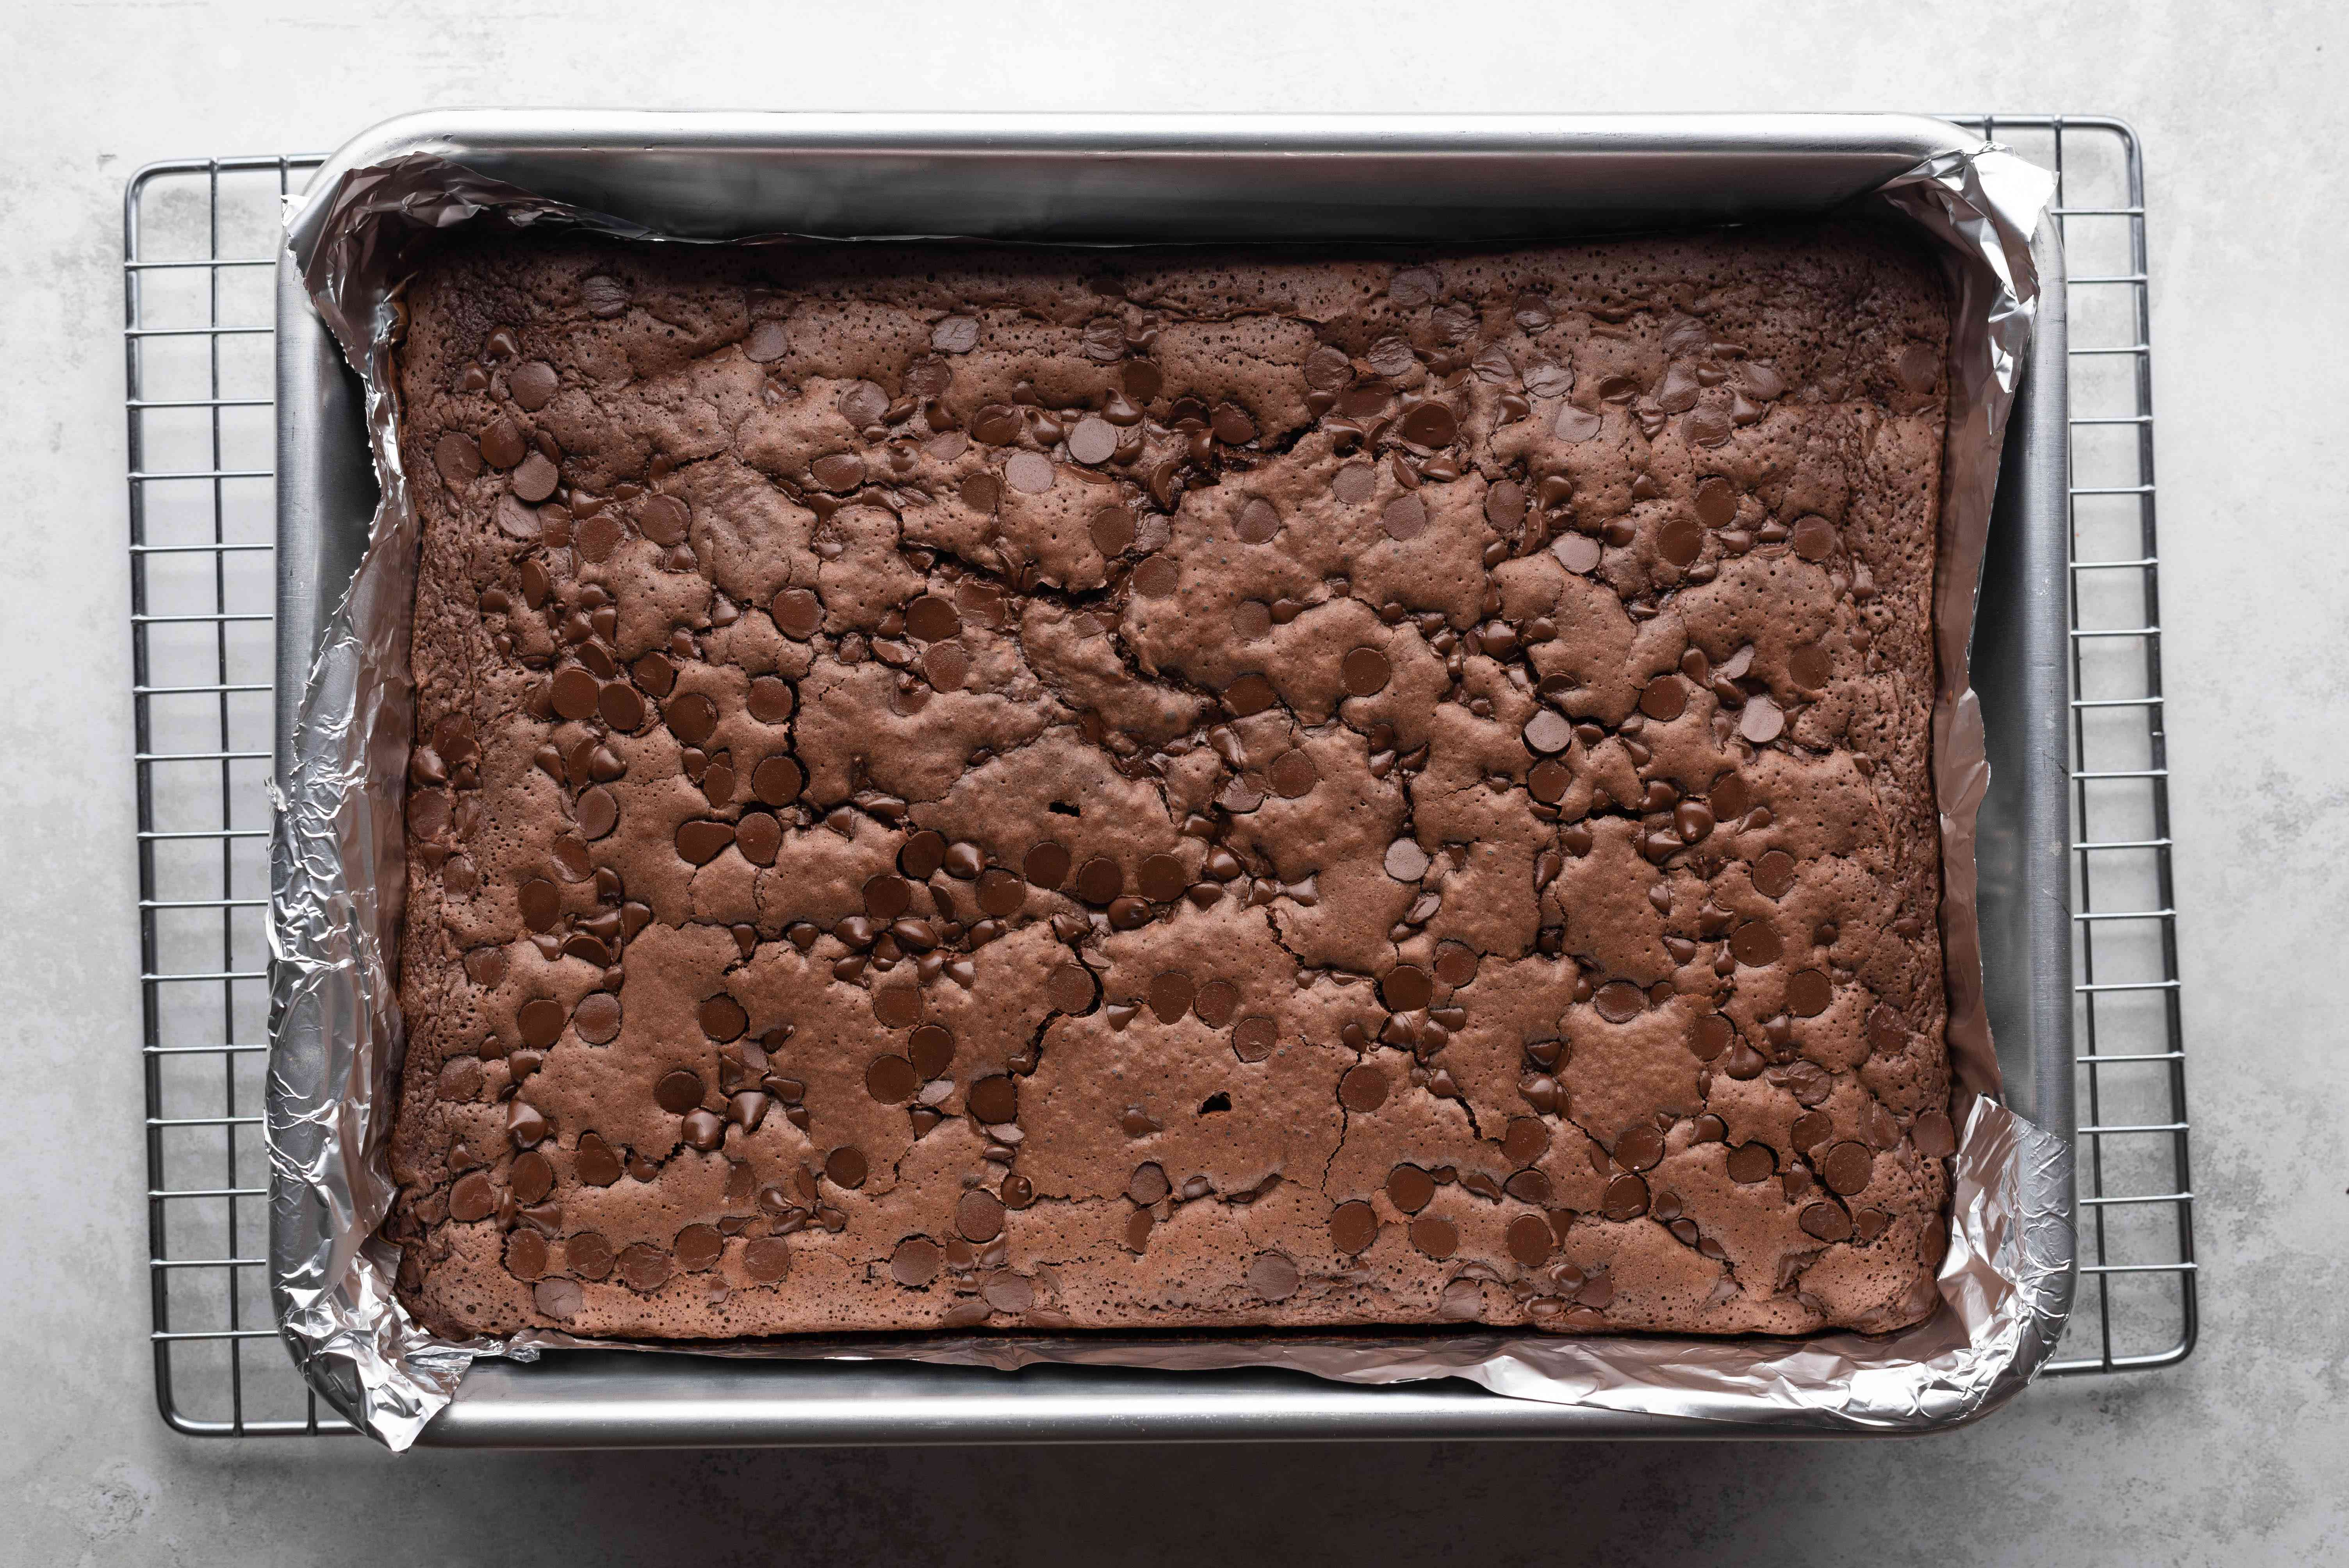 Guinness Stout Chocolate Brownies in a baking pan on a cooling rack